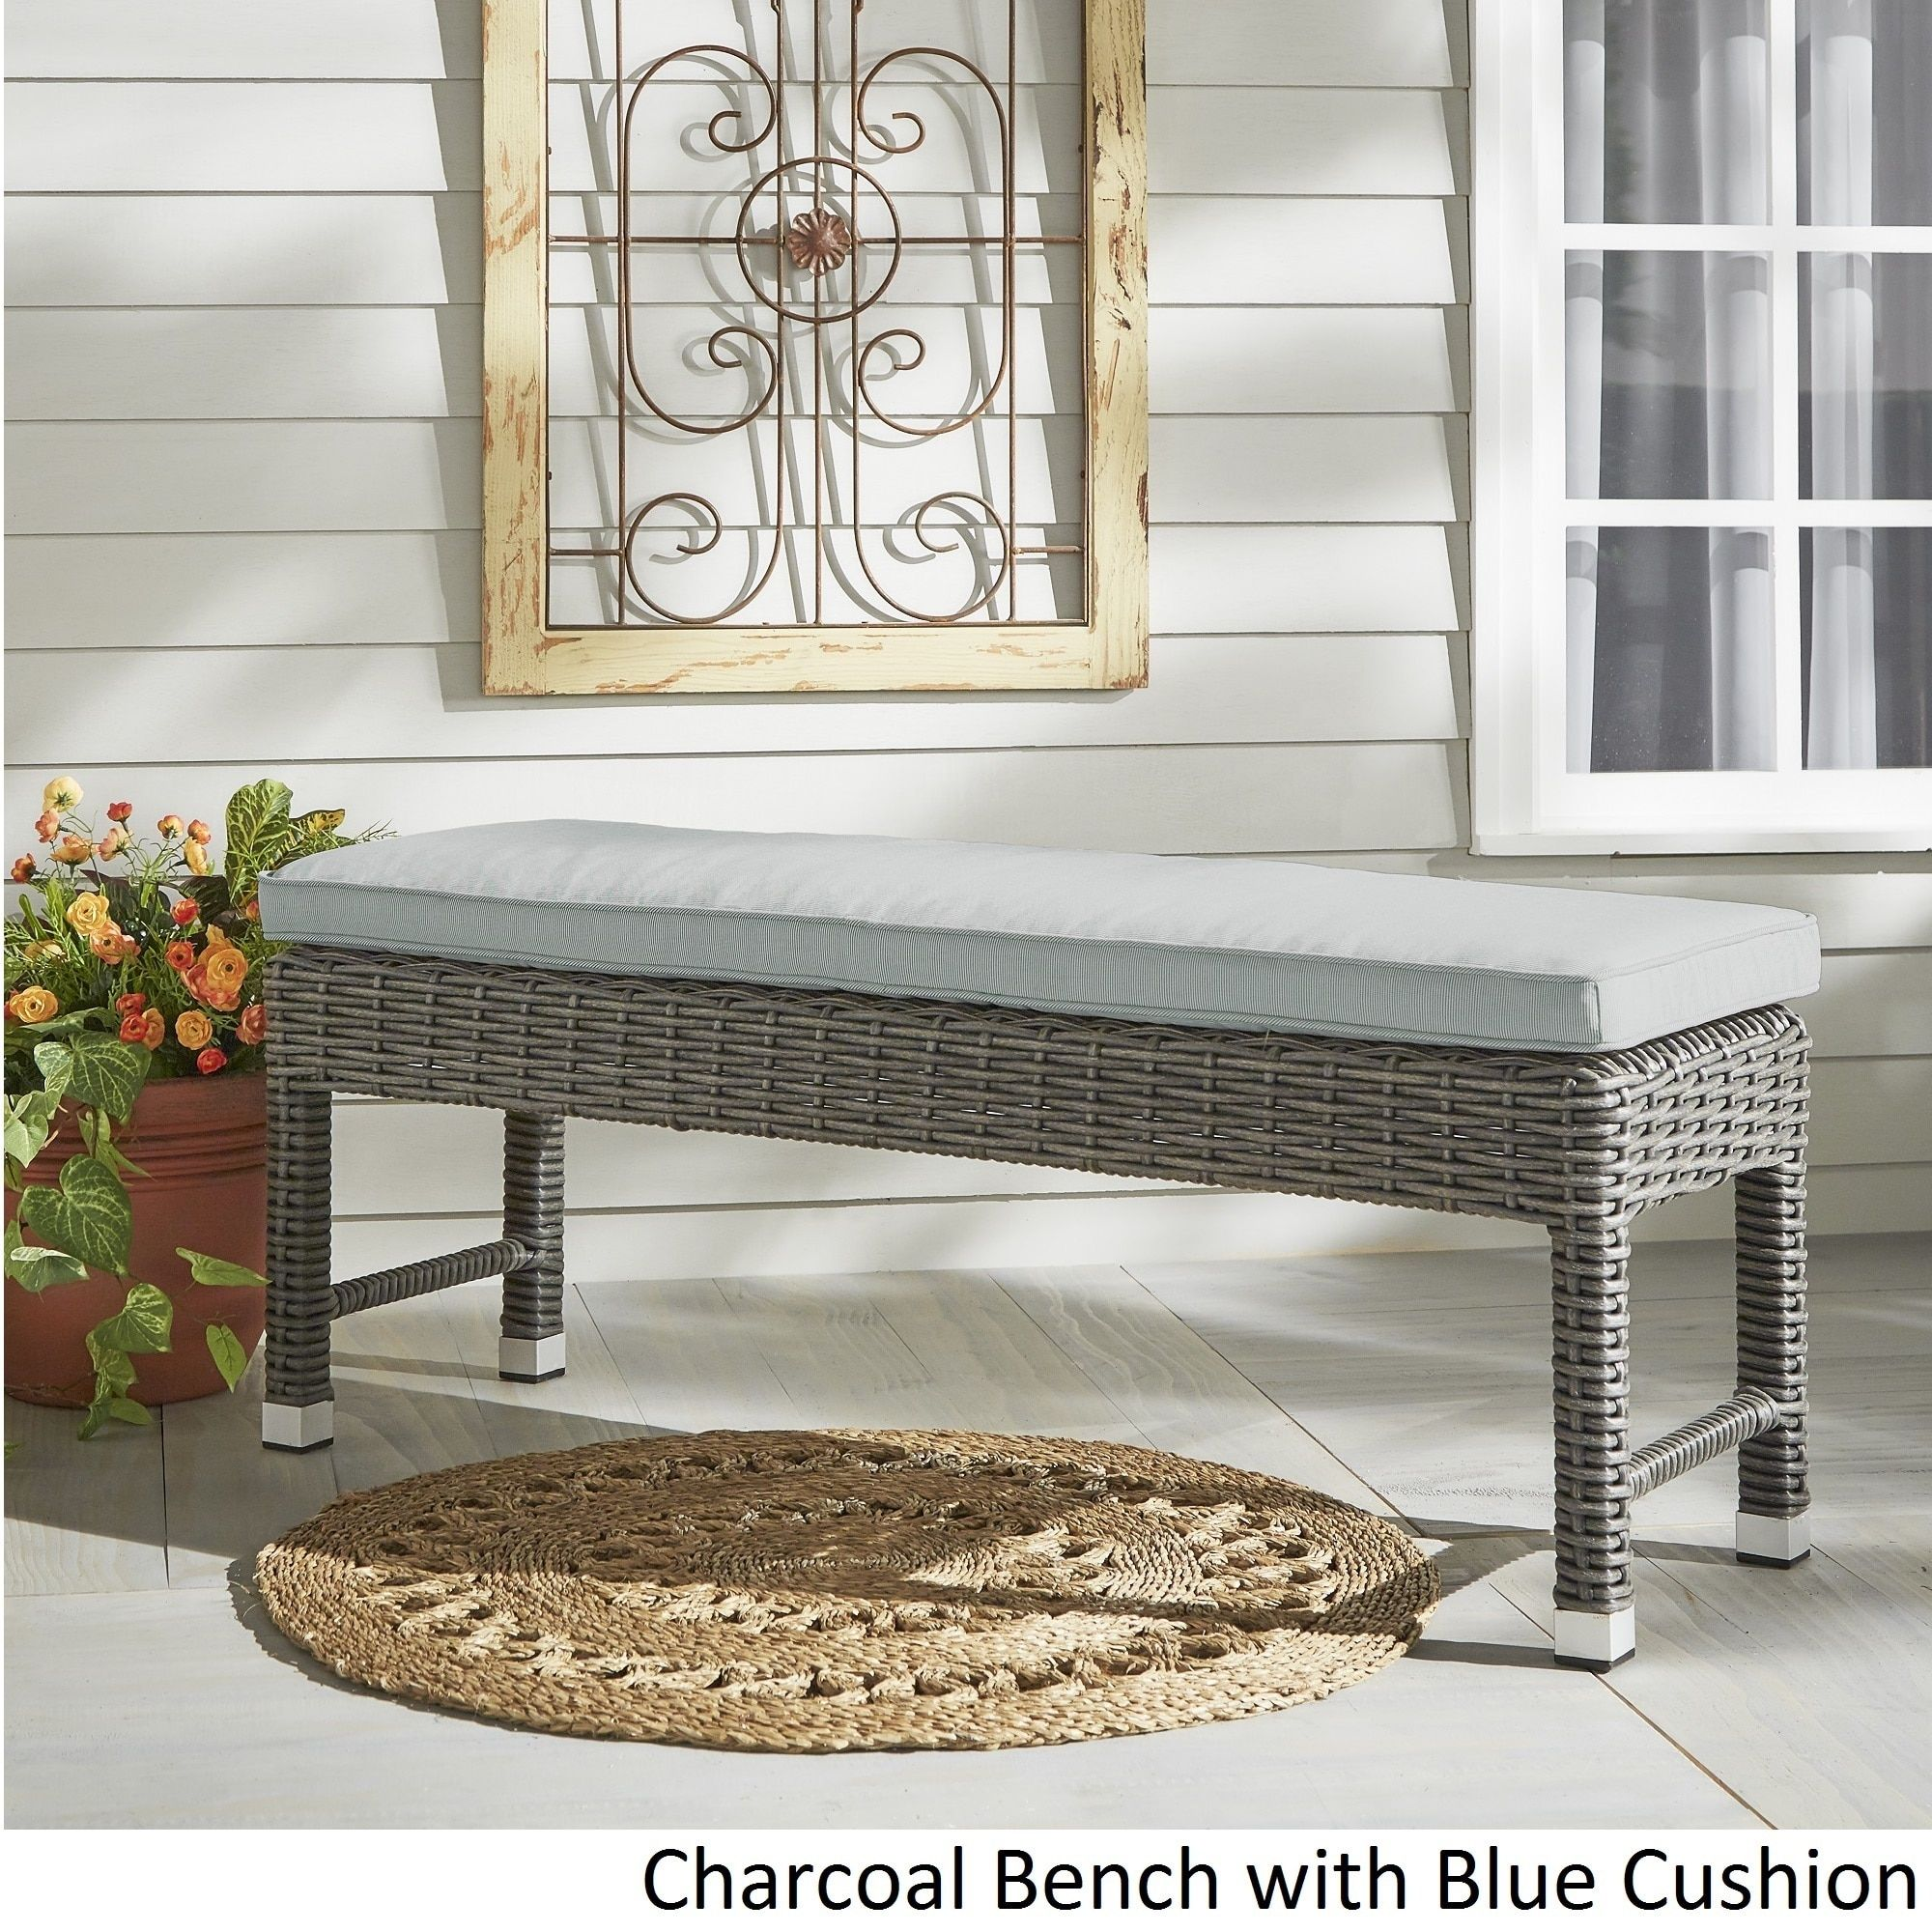 Barbados Wicker 55-inch Patio Cushioned Coffee Table Bench iNSPIRE Q Oasis  by iNSPIRE Q